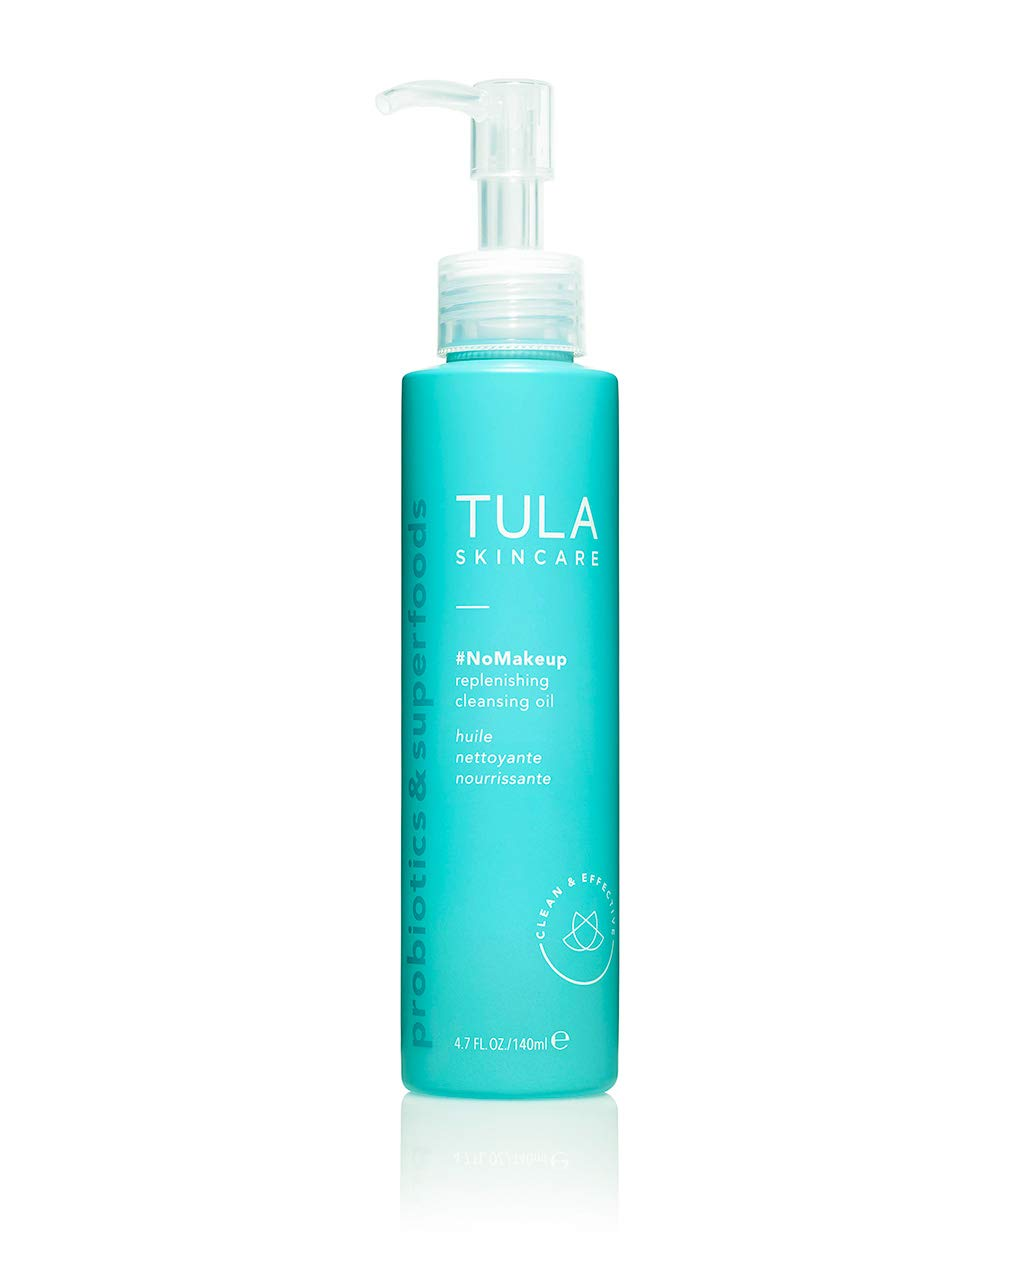 TULA Probiotic Skin Care #nomakeup Replenishing Cleansing Oil | Oil Cleanser and Makeup Remover, Gently Clean and Remove Stubborn Makeup and Residue | 4.7 oz.